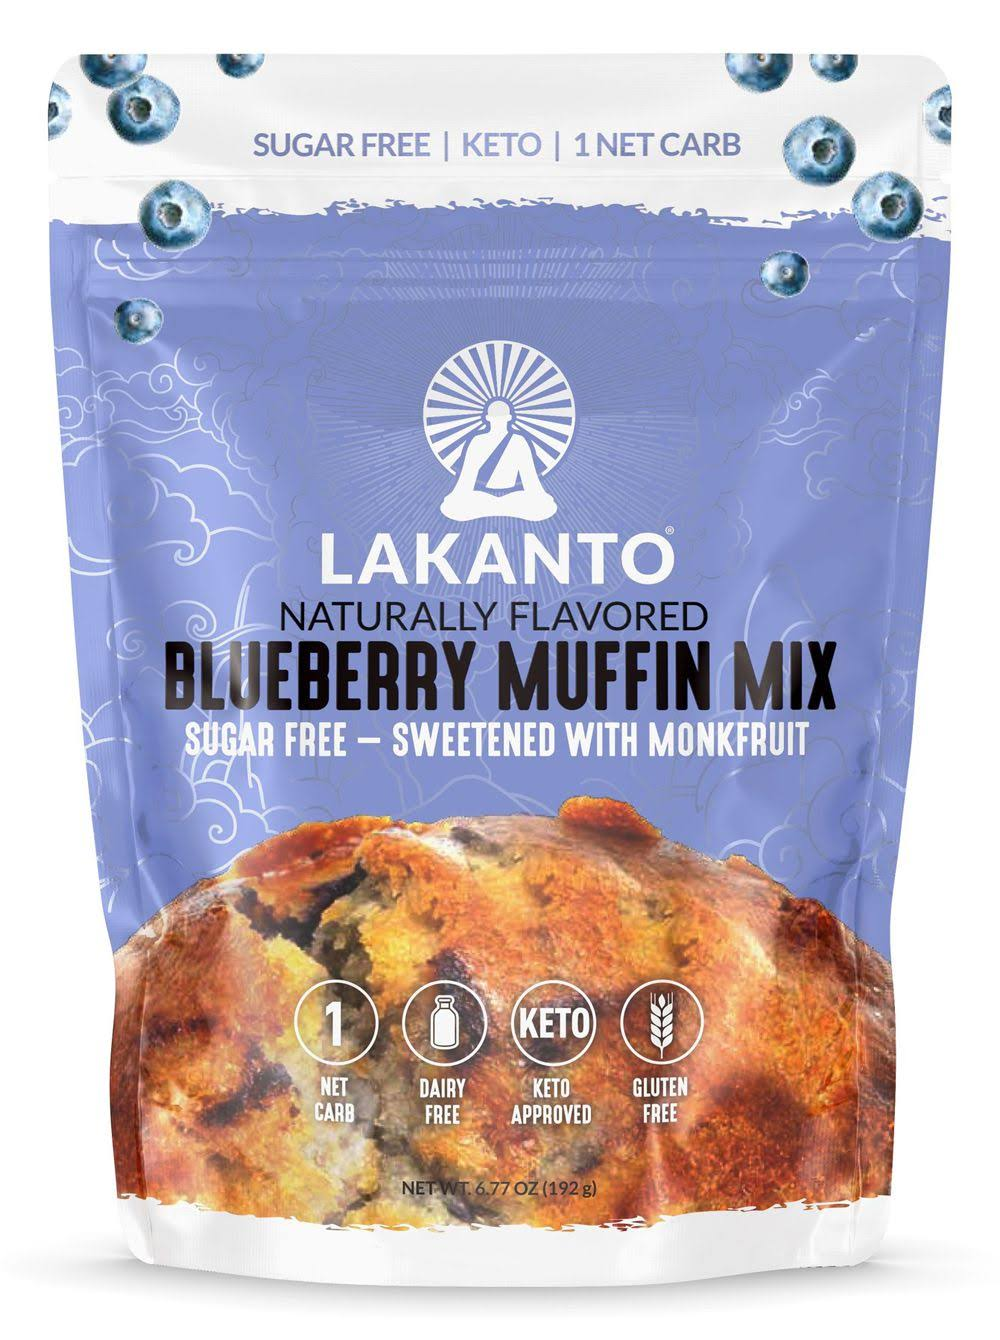 Lakanto Sugar Free Muffin Mix, Blueberry, 6.77 oz